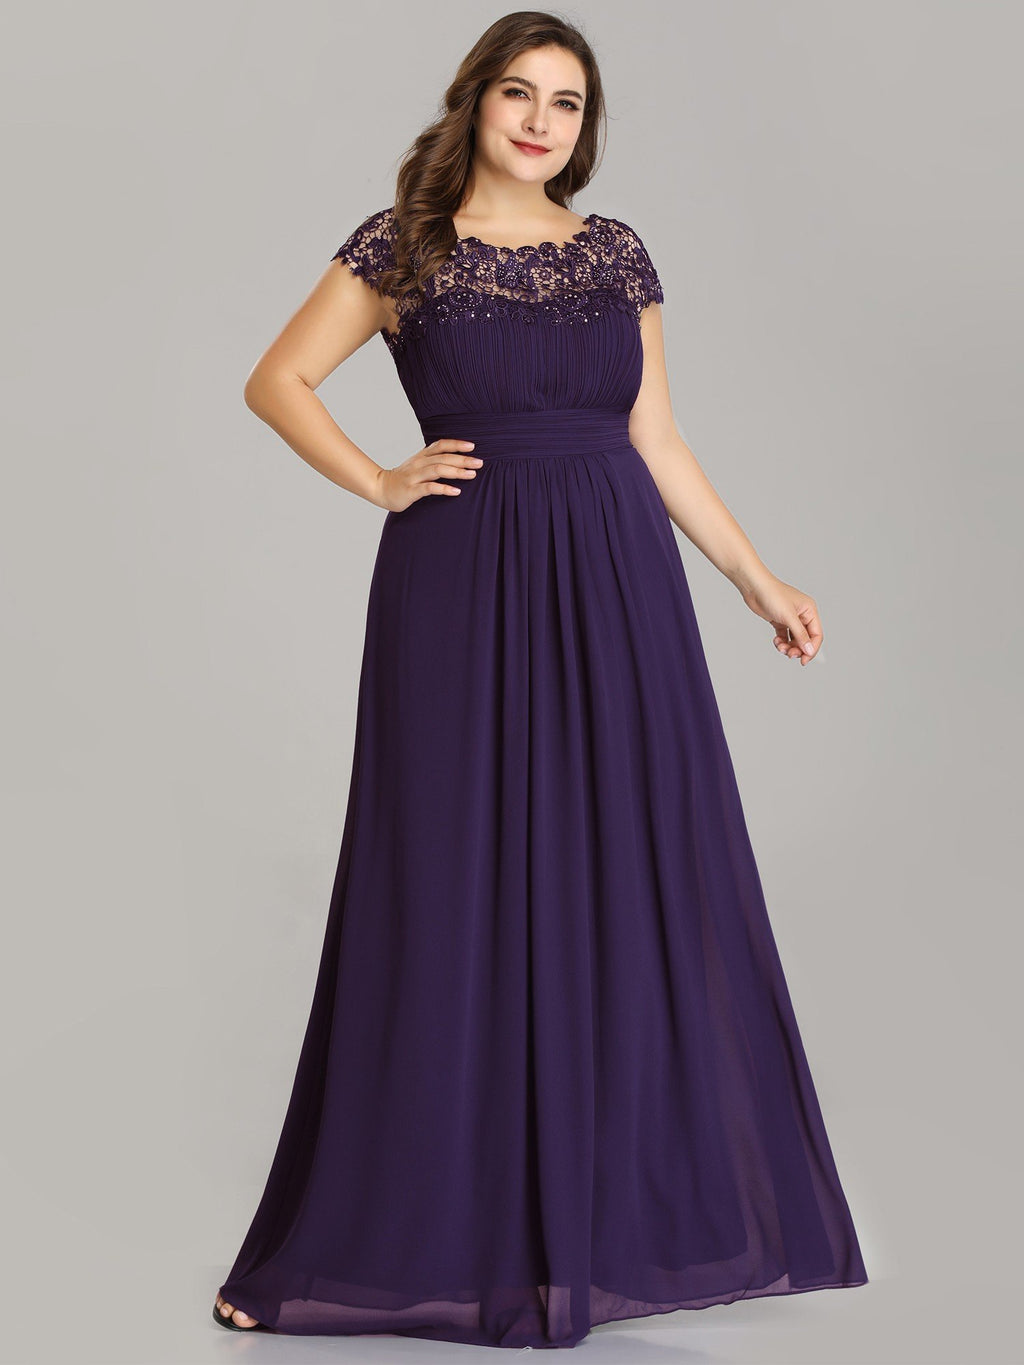 Allanah chiffon bridesmaid dress in dark purple Express NZ wide!